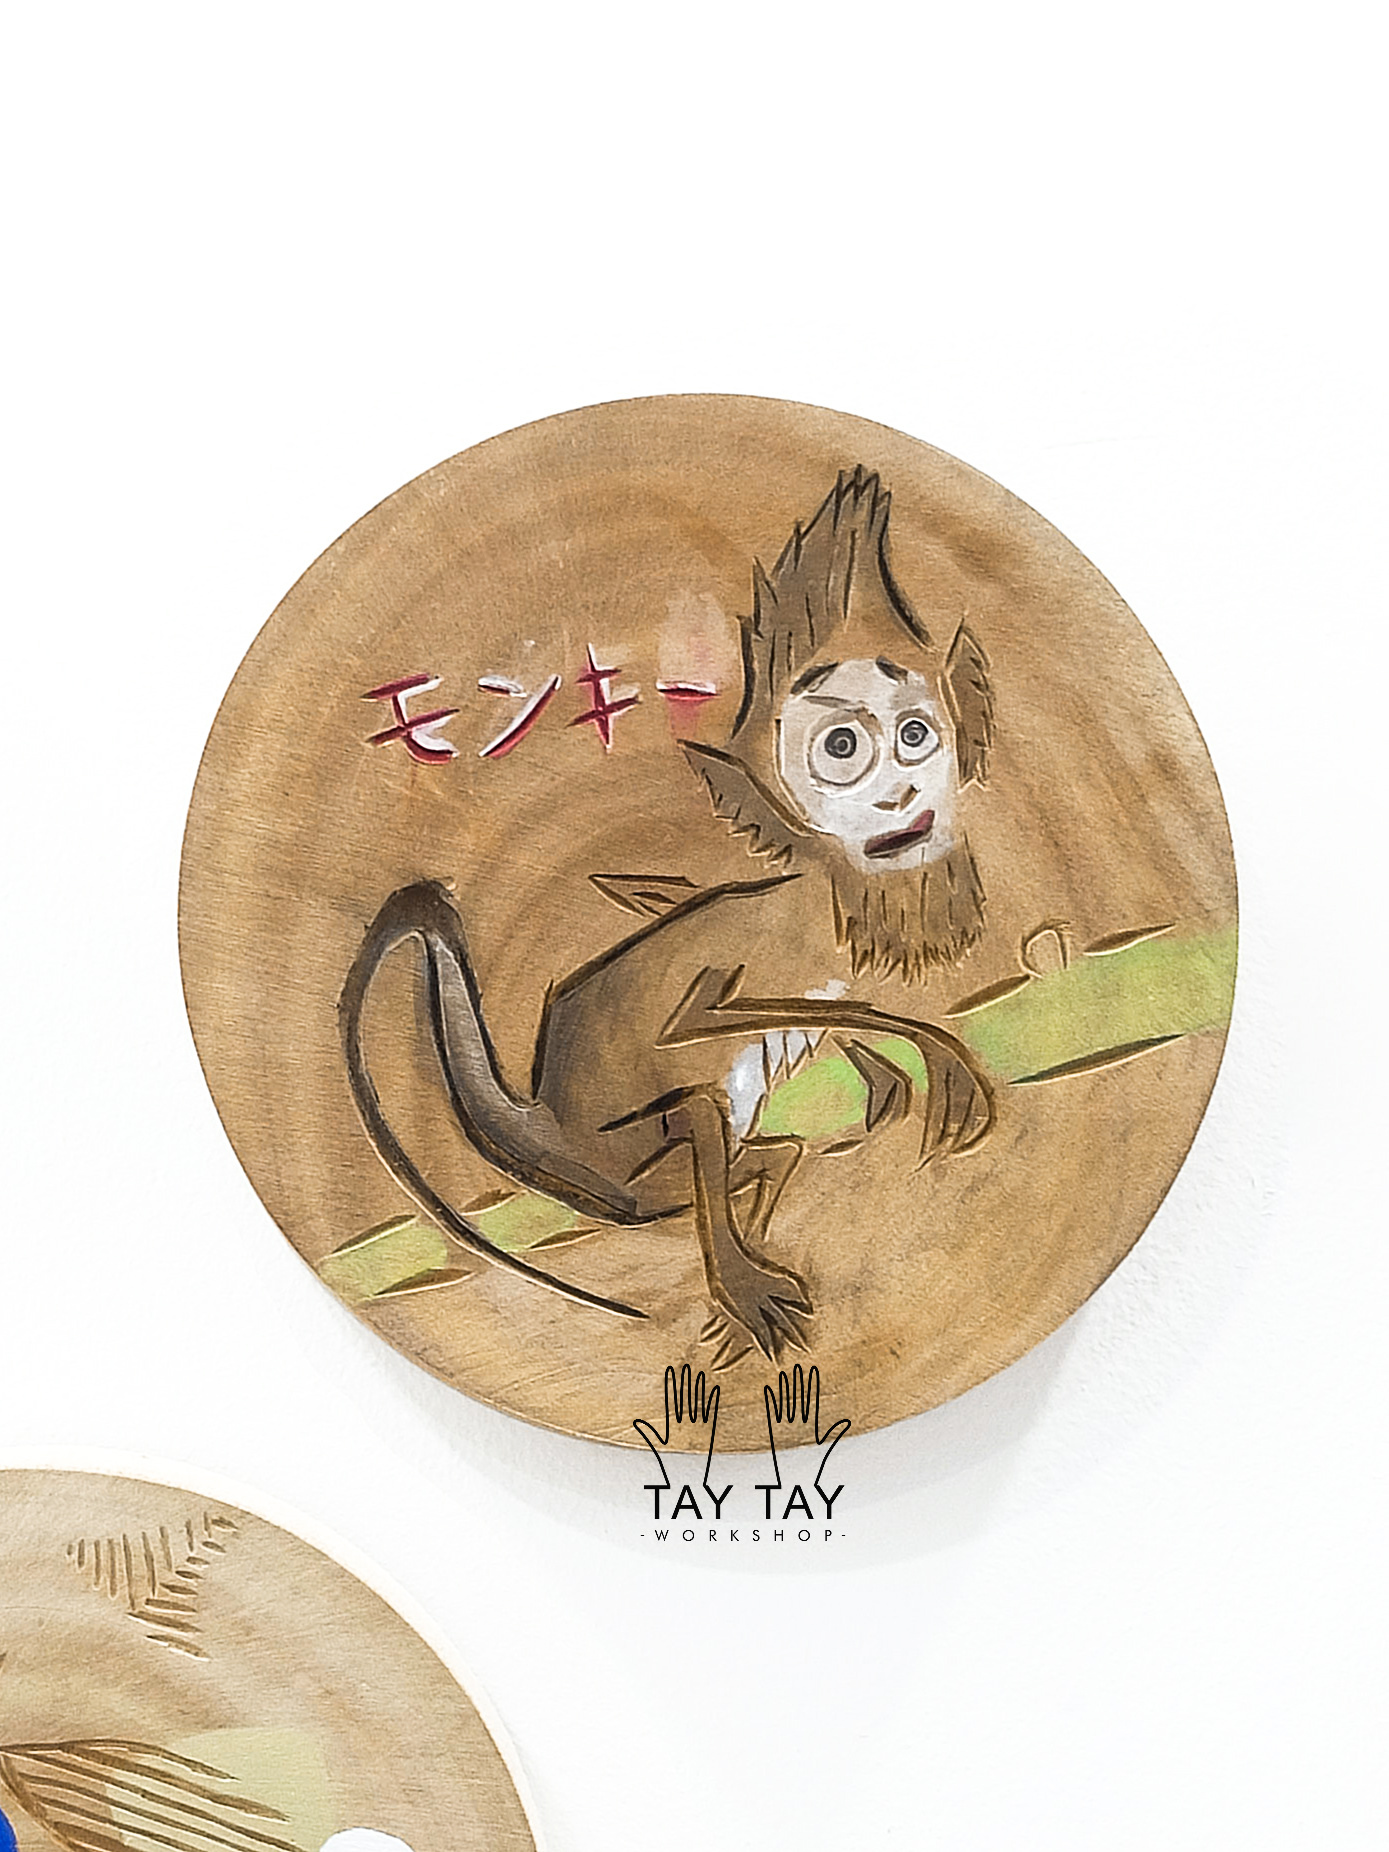 taytayworkshop-wood-artwork-13.jpg